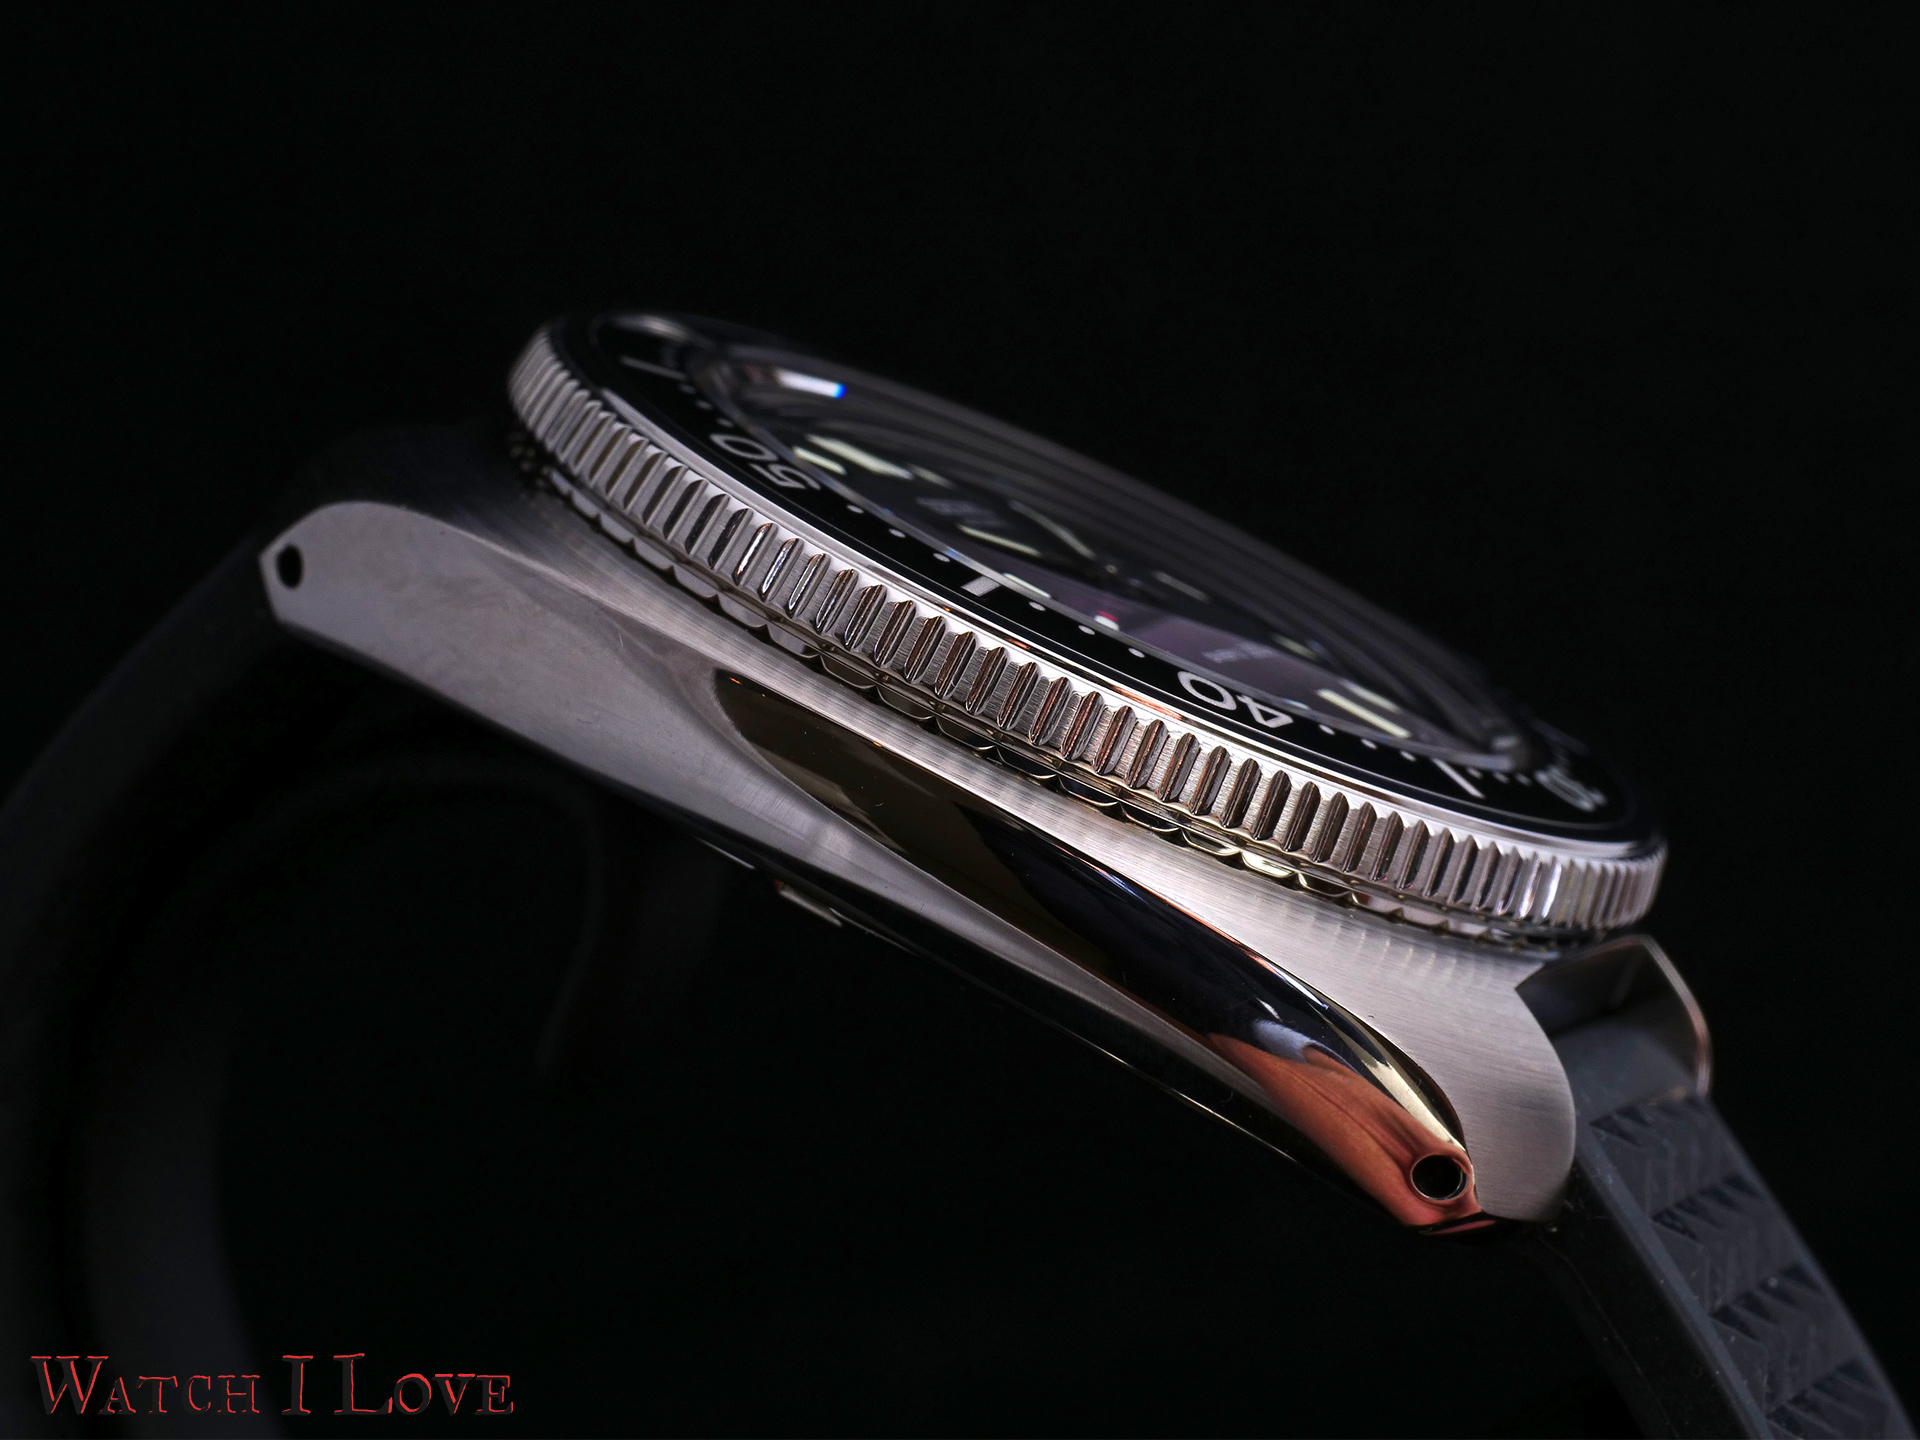 The SLA033J1 case side presents a mirror polish of the highest quality